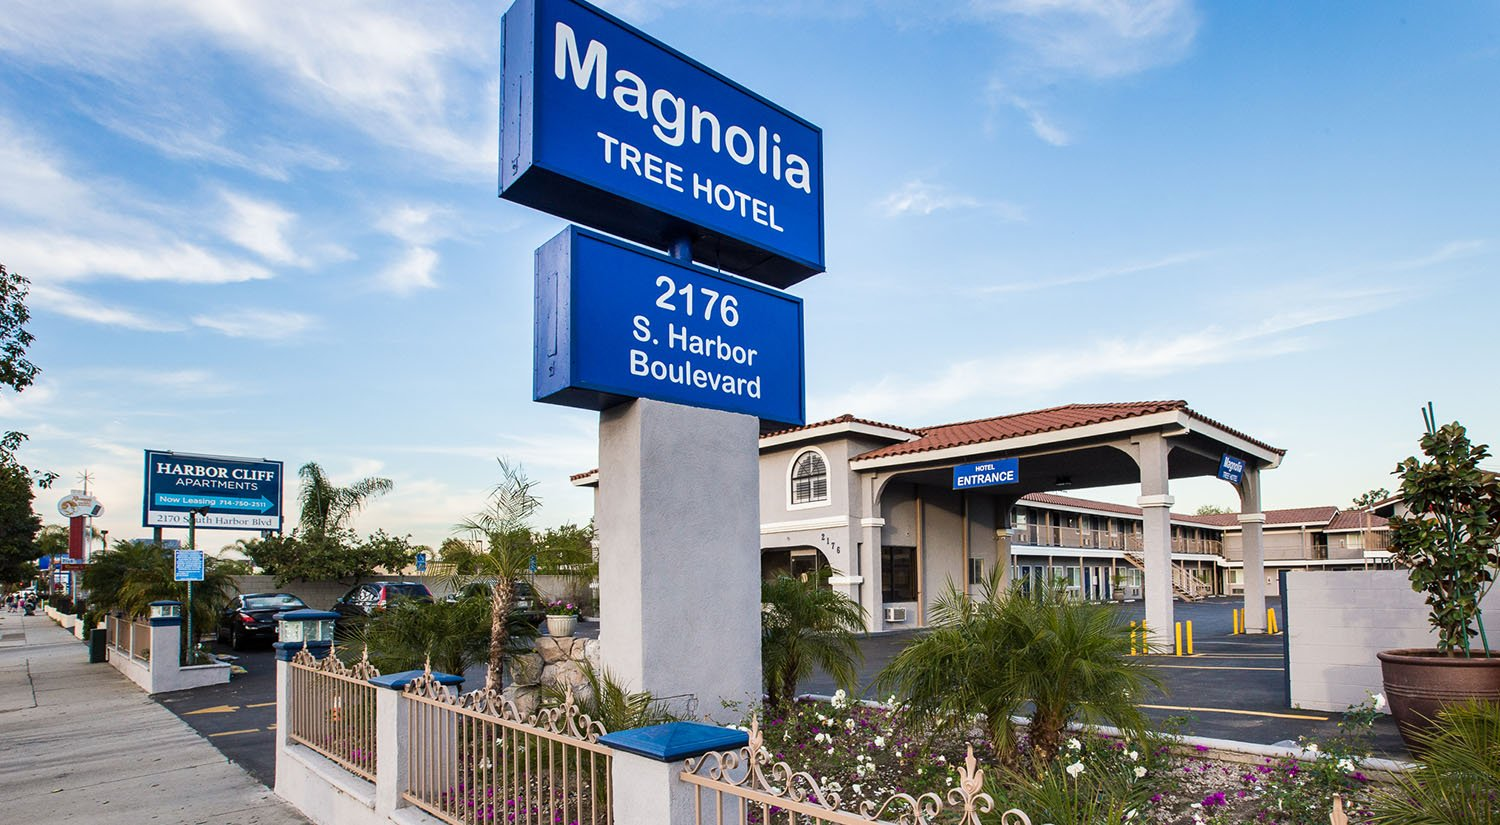 Welcome to the Magnolia Tree Hotel